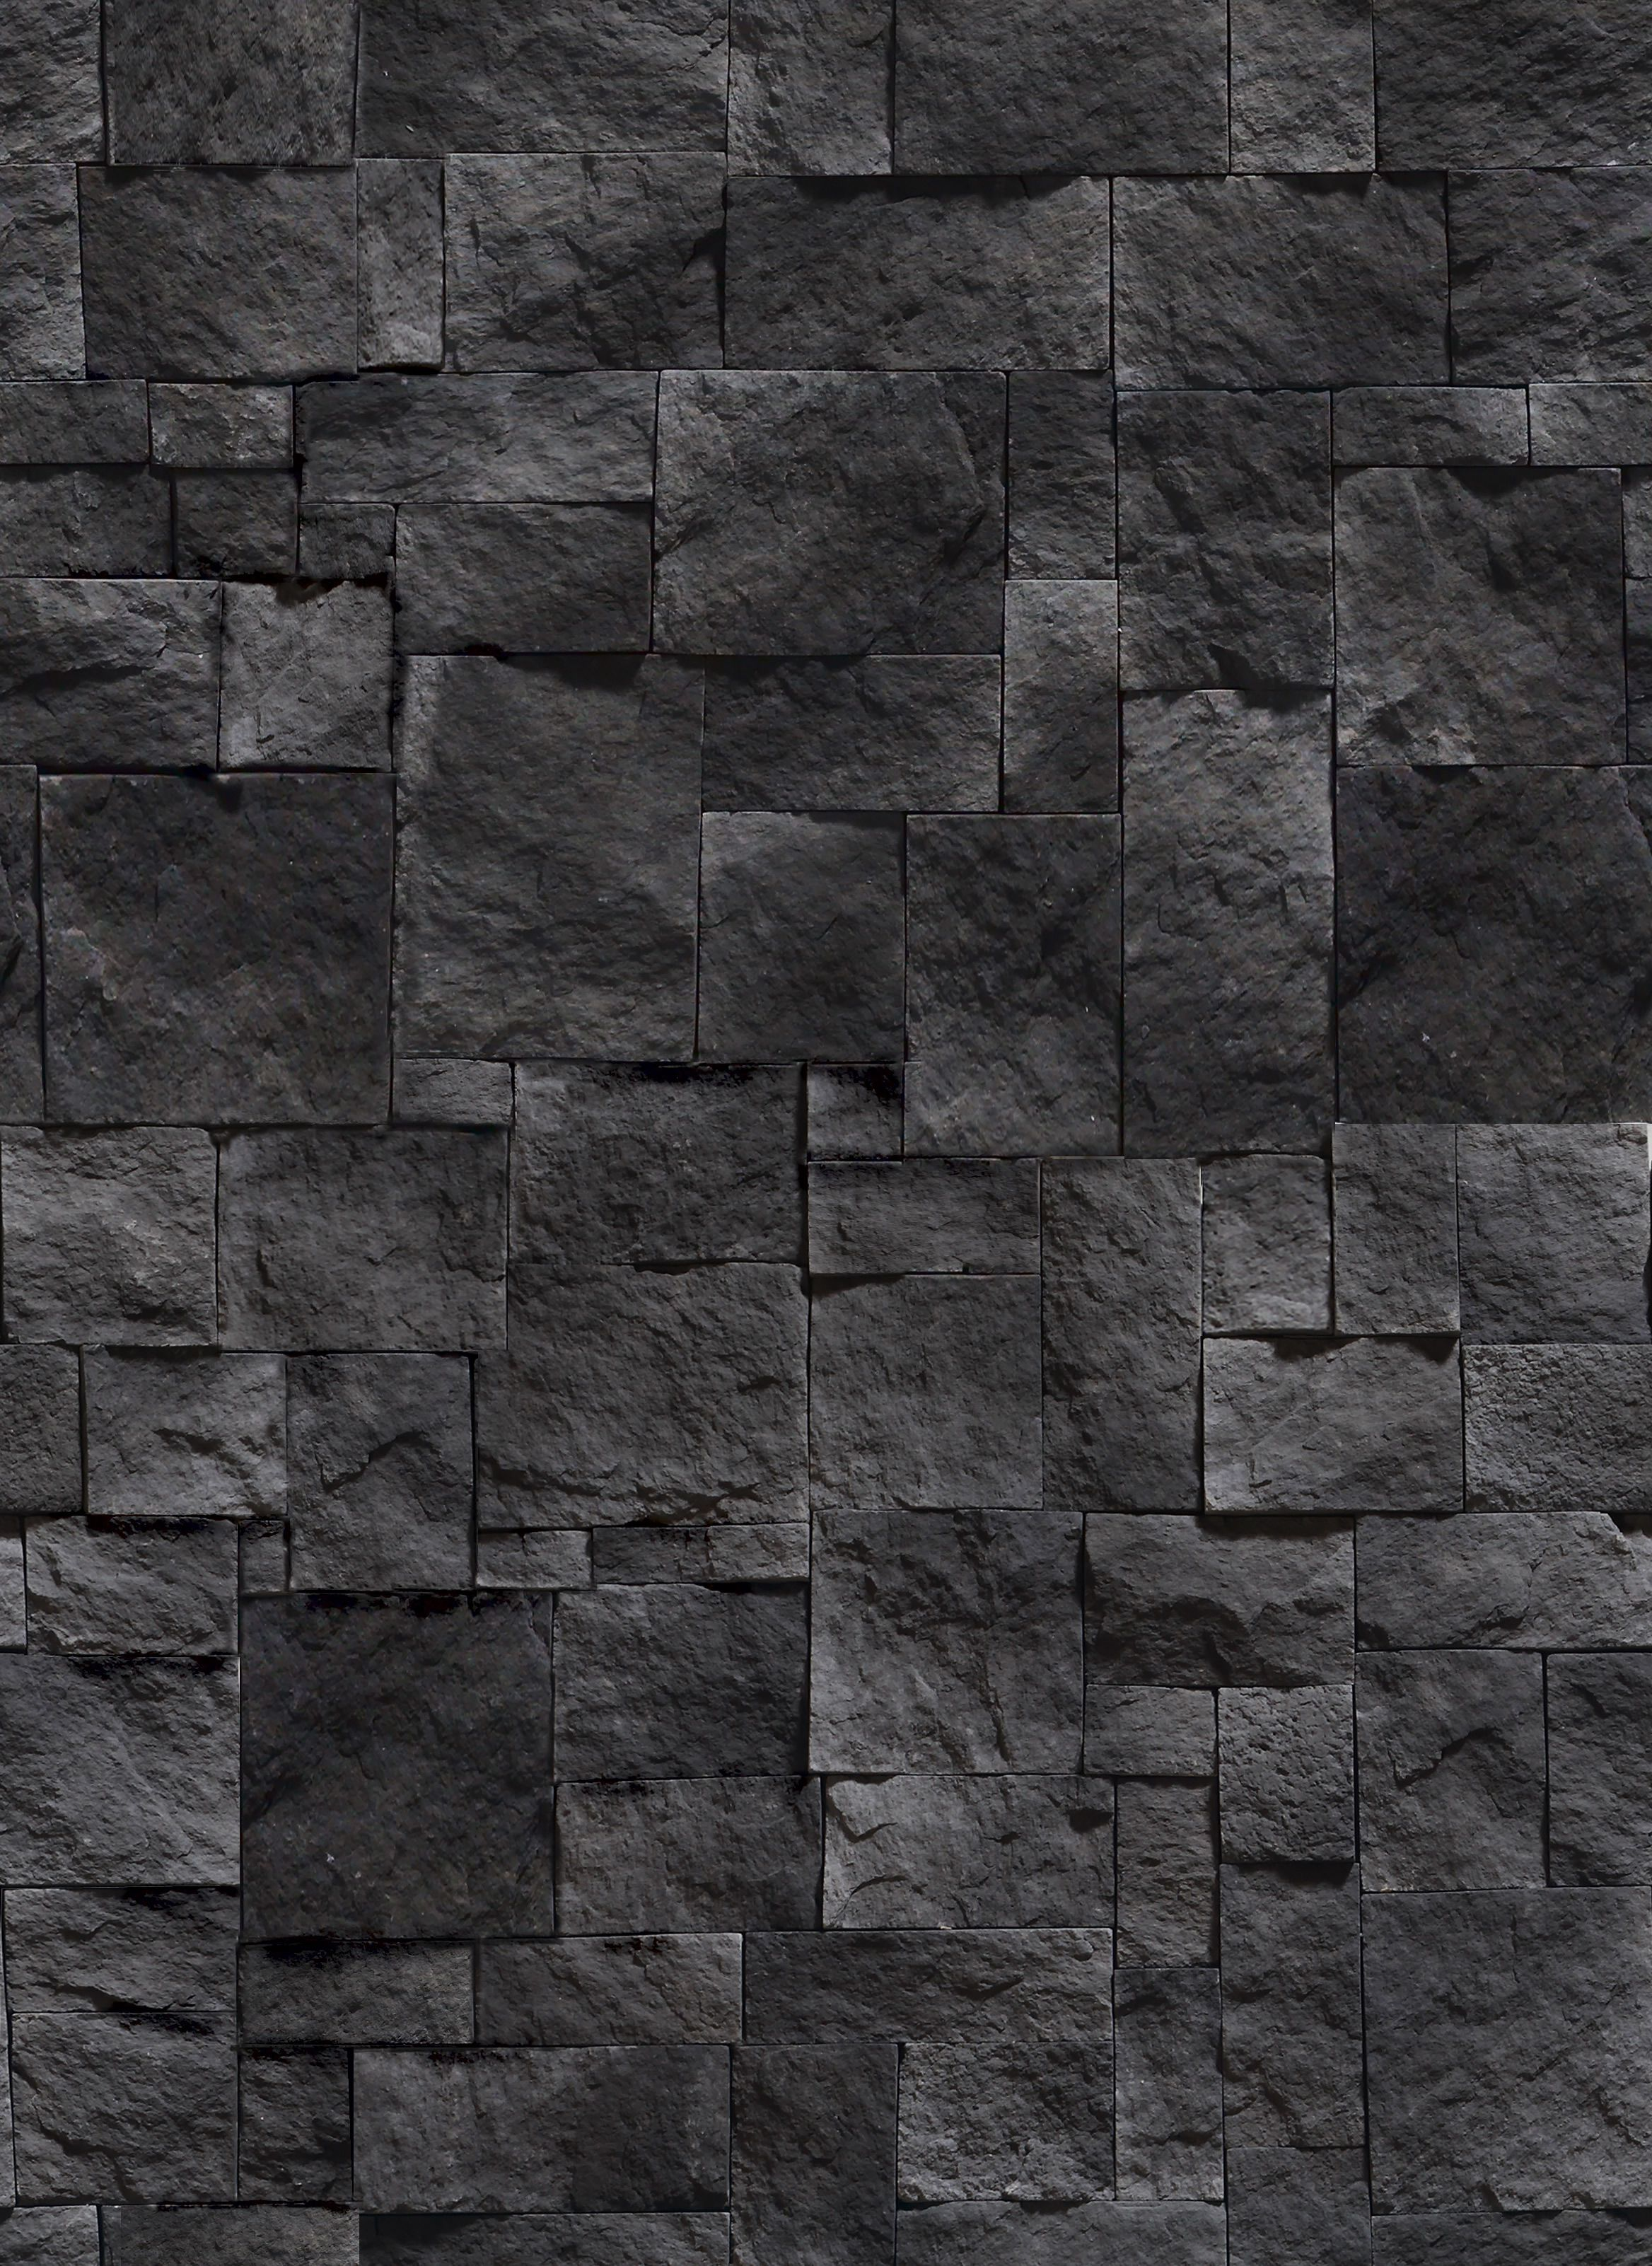 Black Stone Wall Texture Design Inspiration 29211 Floor